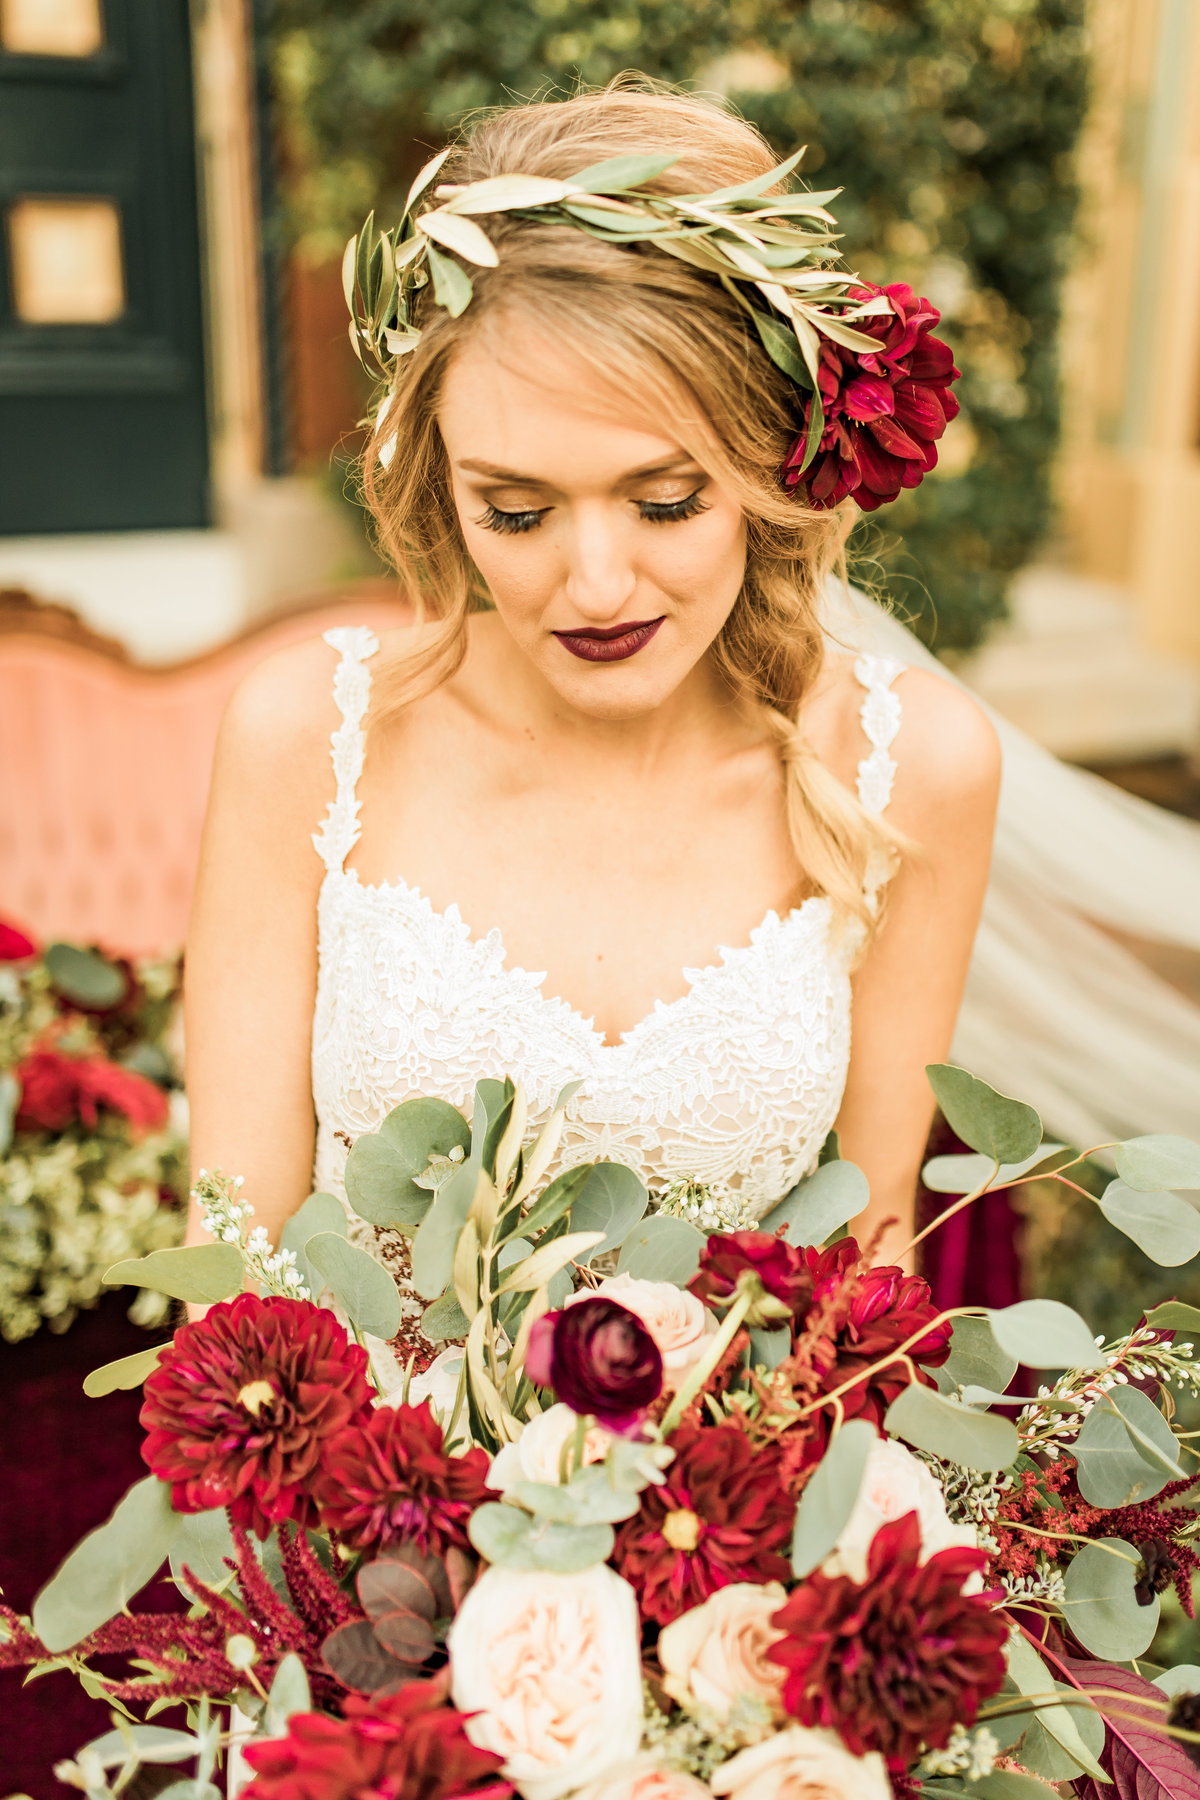 Fall Boho-Inspired Styled Shoot Lafayette Square Historic District  St. Louis, Missouri  Allison Slater Photography  Wedding Photographer307